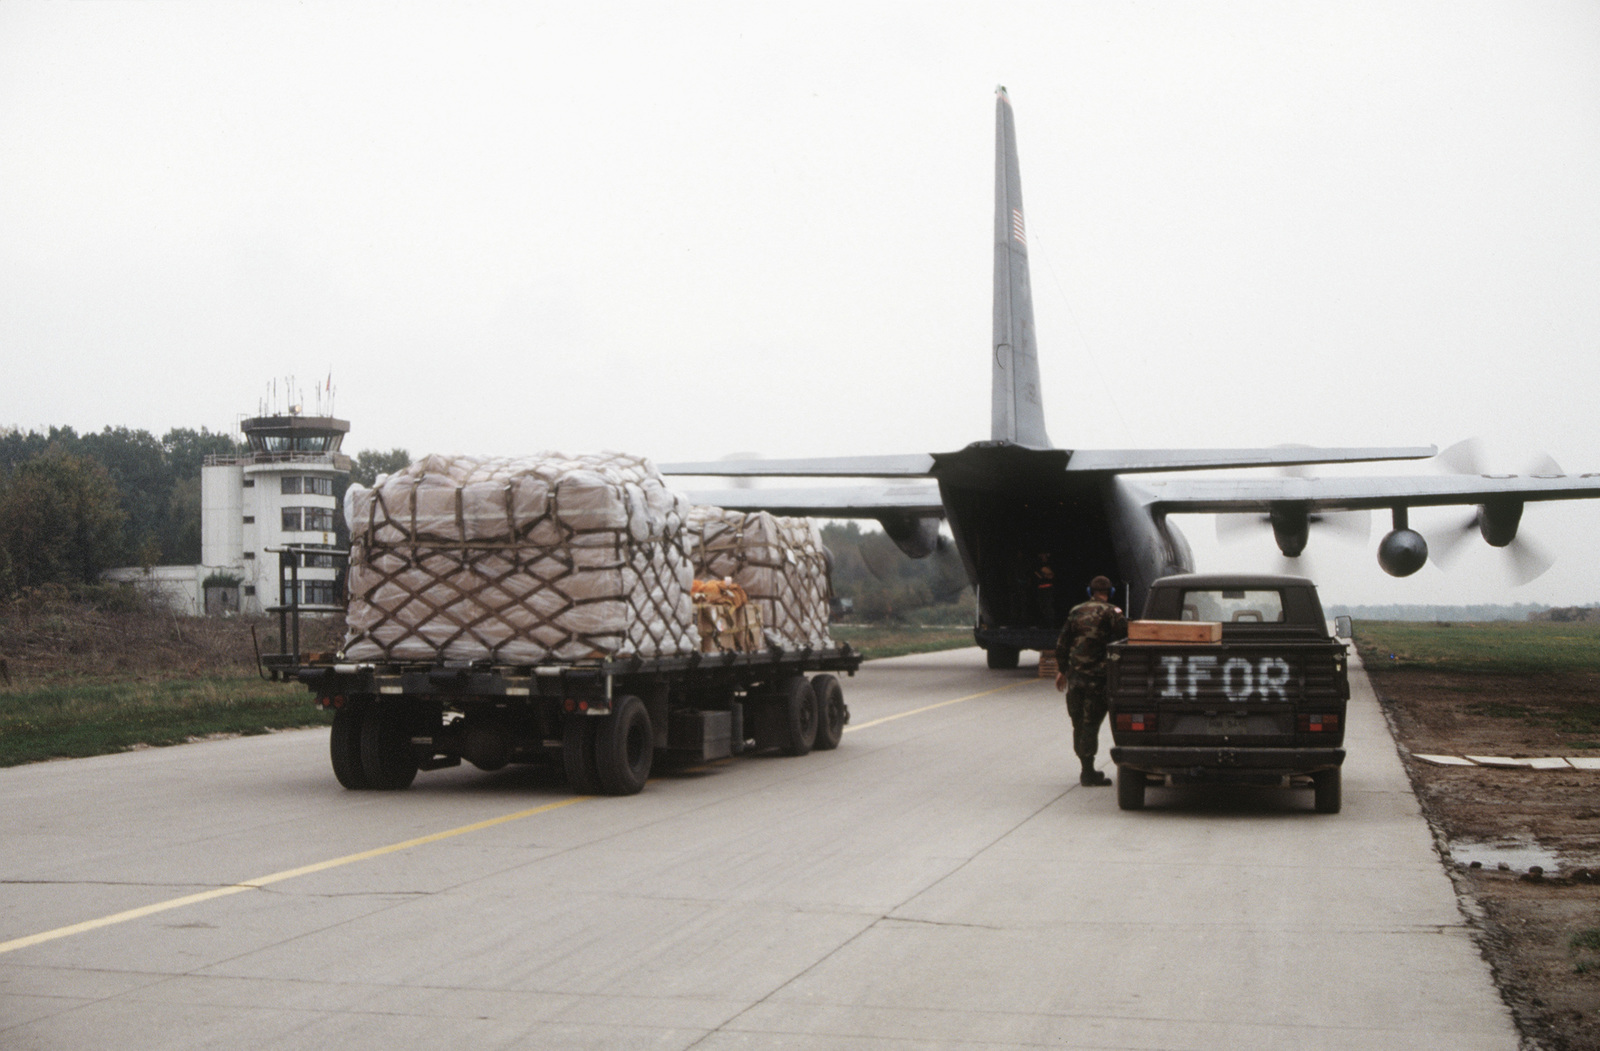 Air Transportation personnel from the 621st Aerial Port Squadron, McGuire Air Force Base, New Jersey, wait for the signal to load up three pallets onto a C-130 transport aircraft from the 41st Airlift Squadron, Pope Air Force Base, North Carolina. The Air Transportation Specialists are temporarily assigned to the 4100th Group (Provisional)